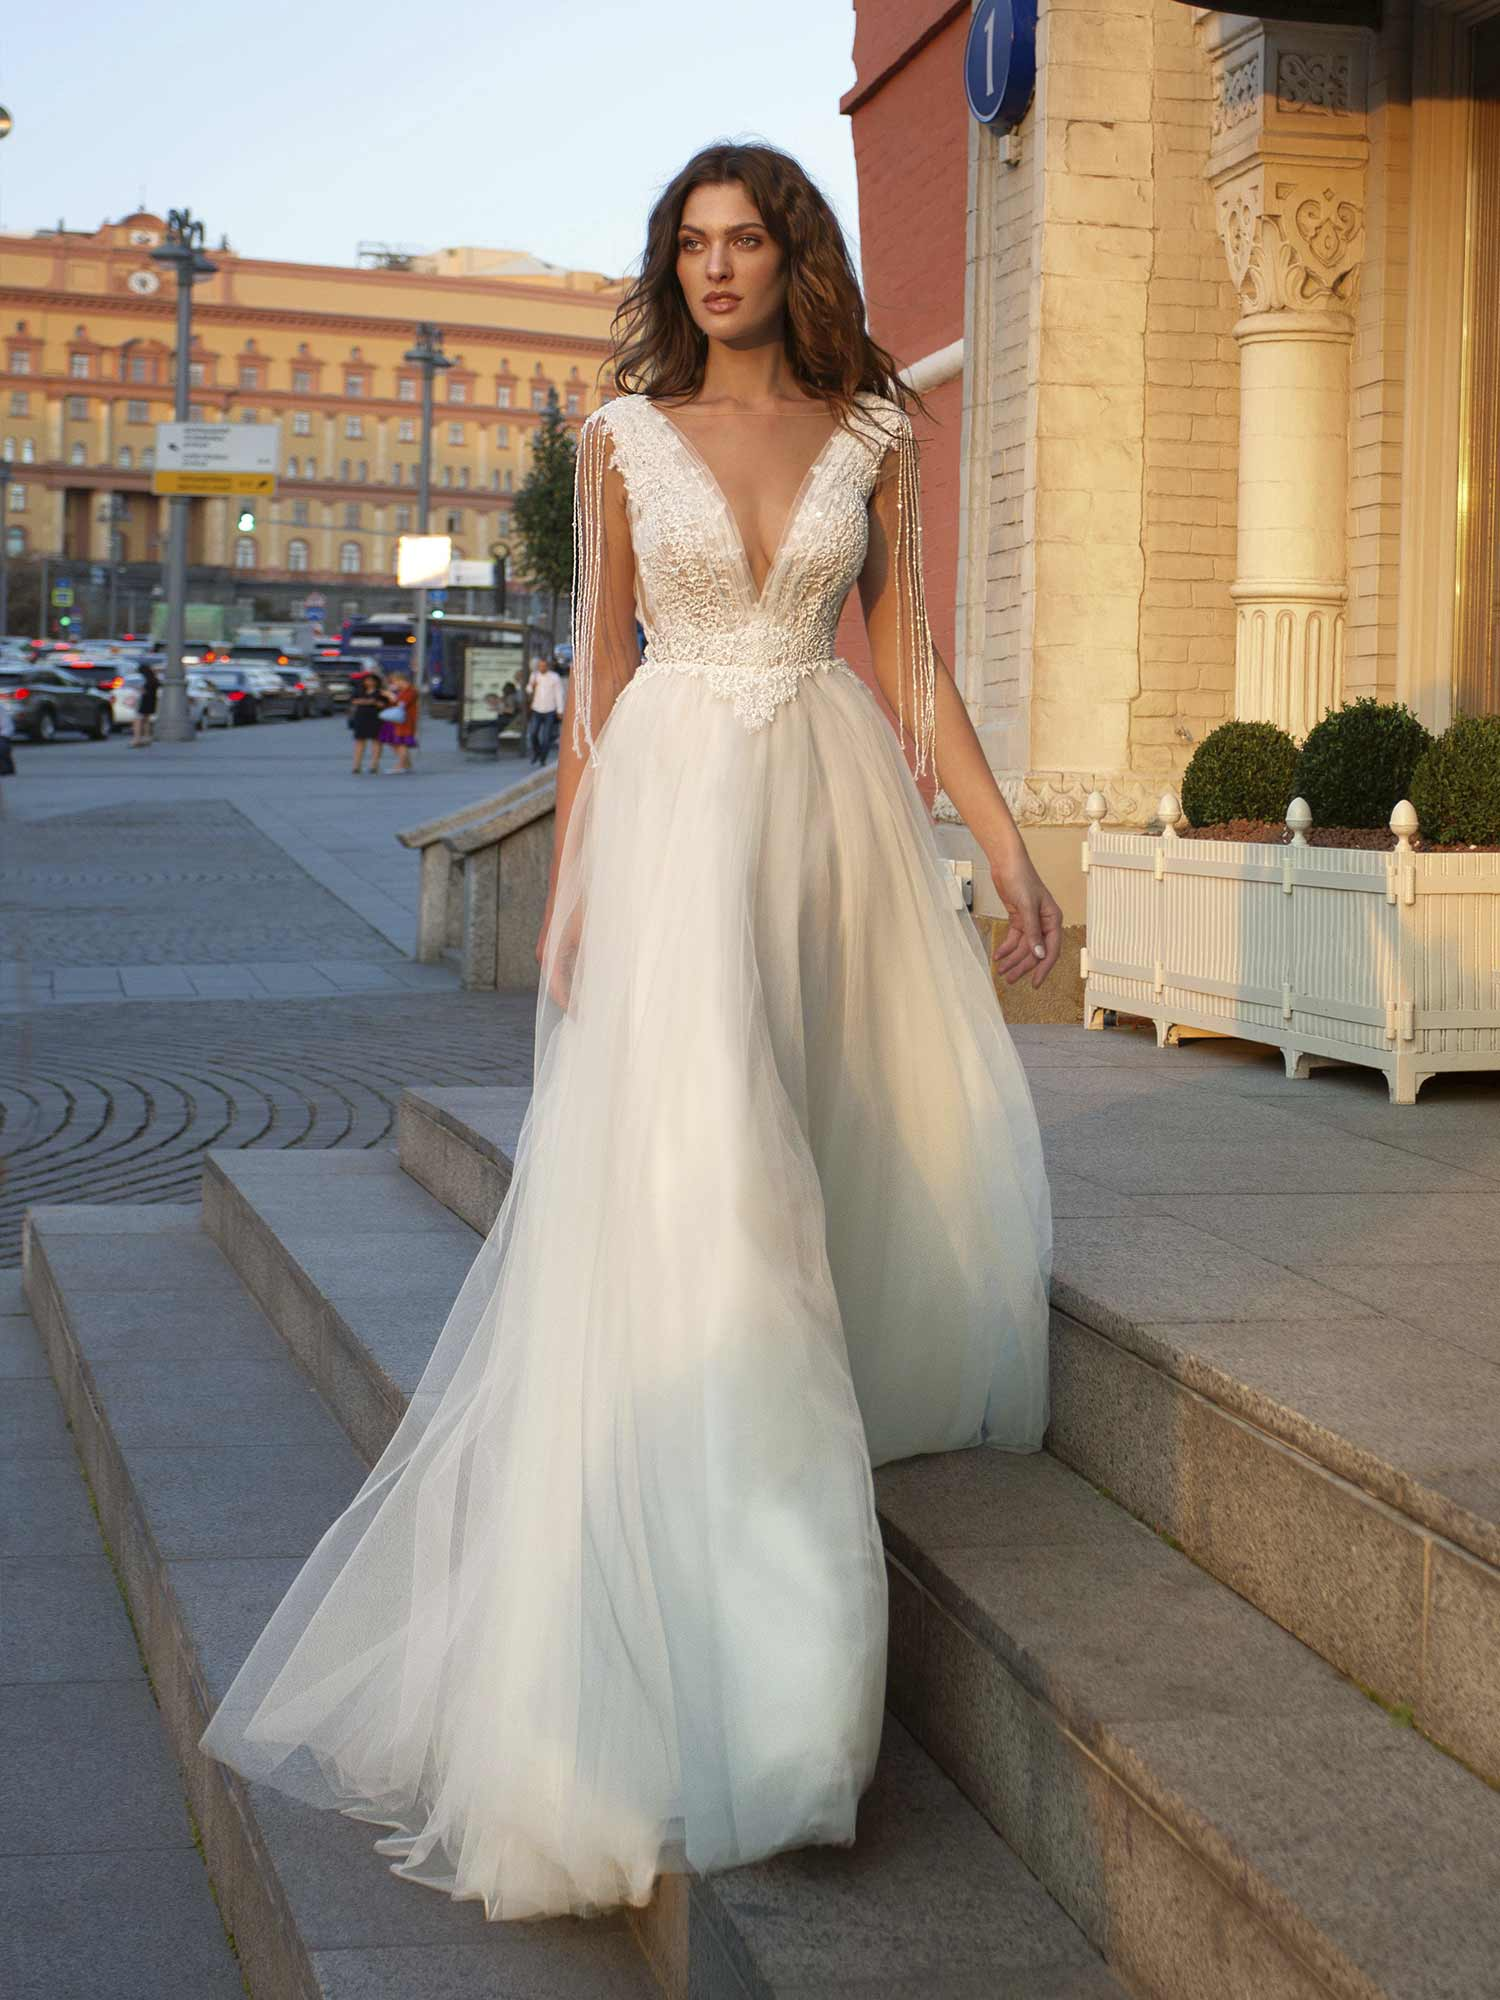 A-line wedding dress with tulle skirt, lace